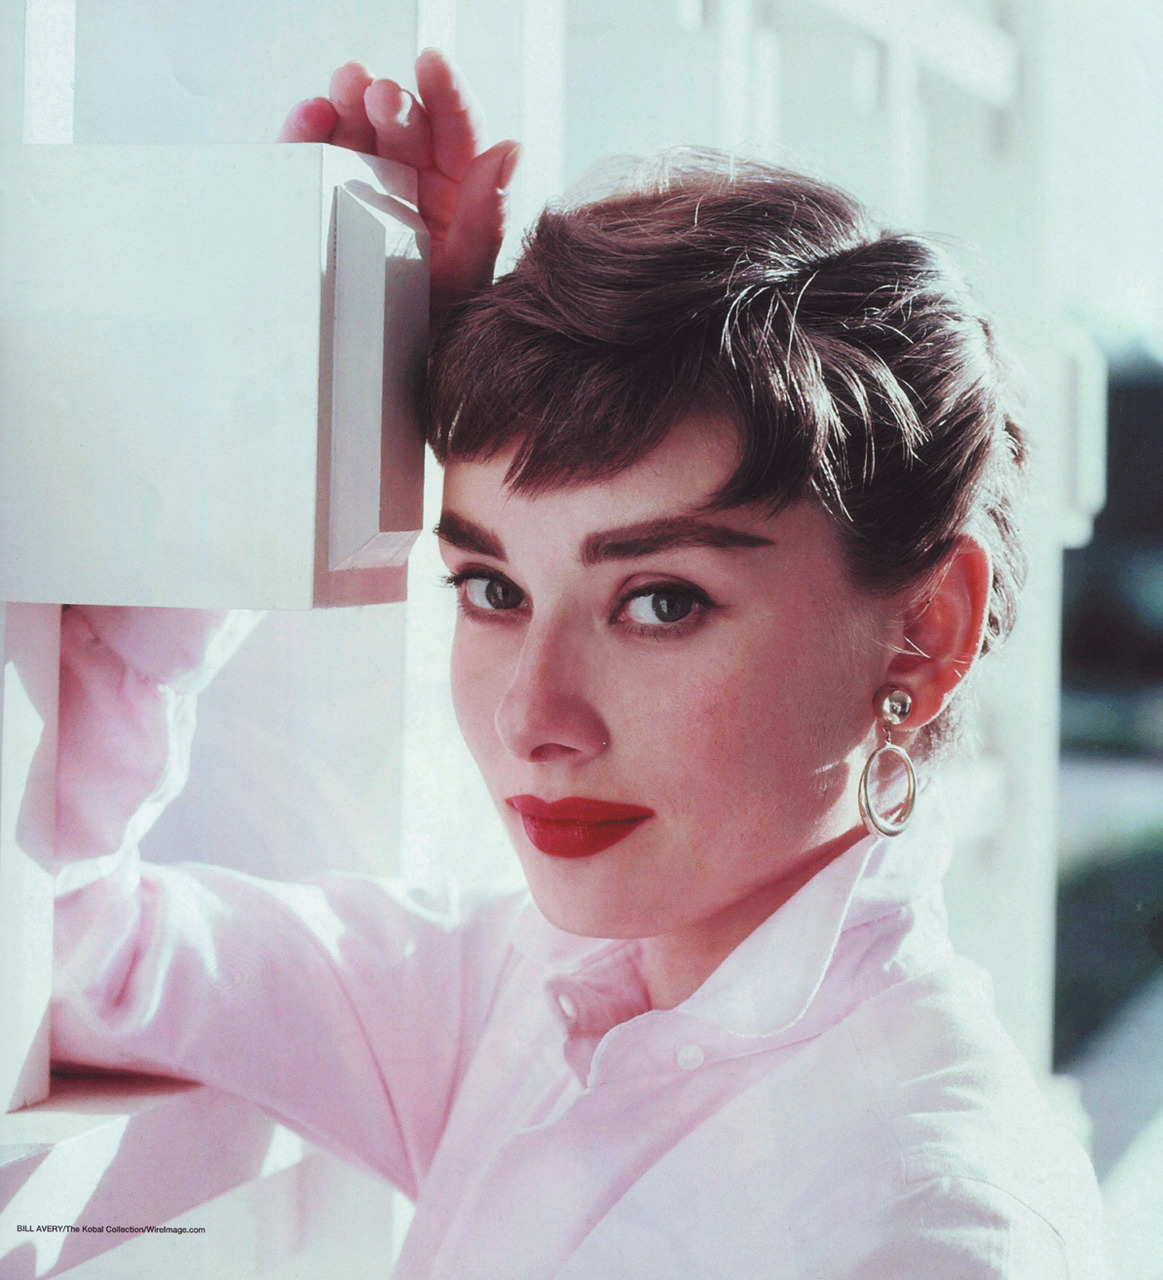 audrey hepburn - photo #18